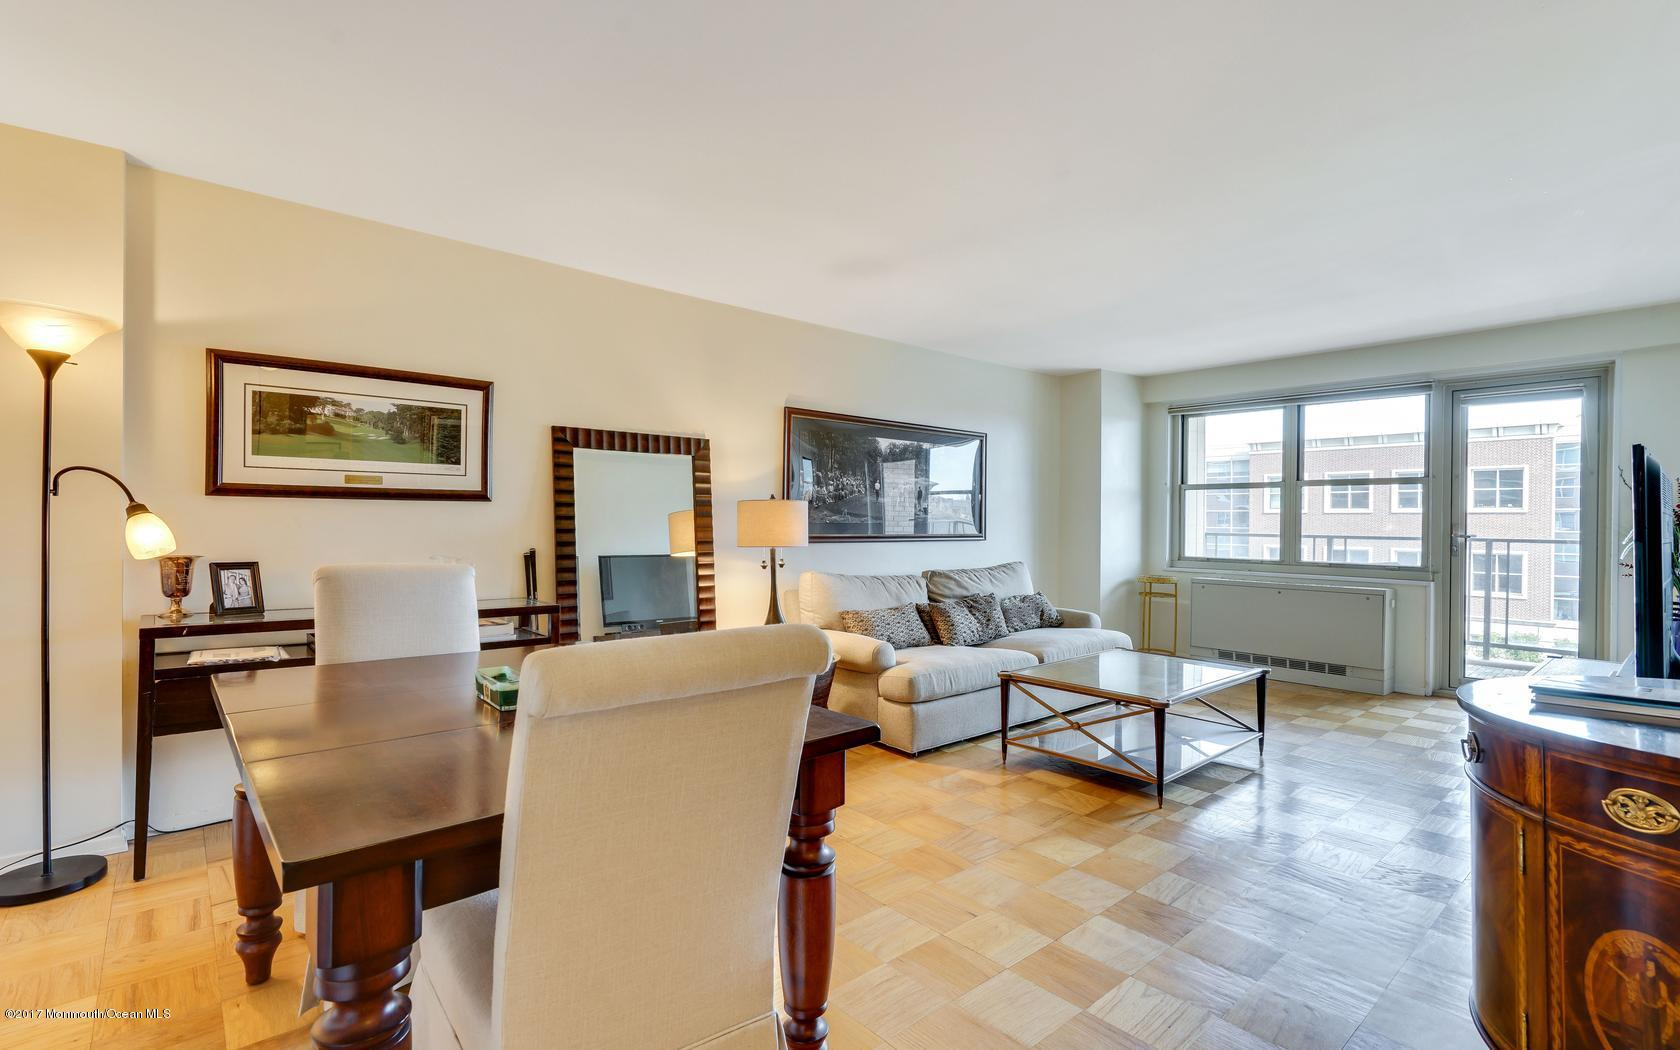 28 RIVERSIDE AVENUE #2F, RED BANK, NJ 07701